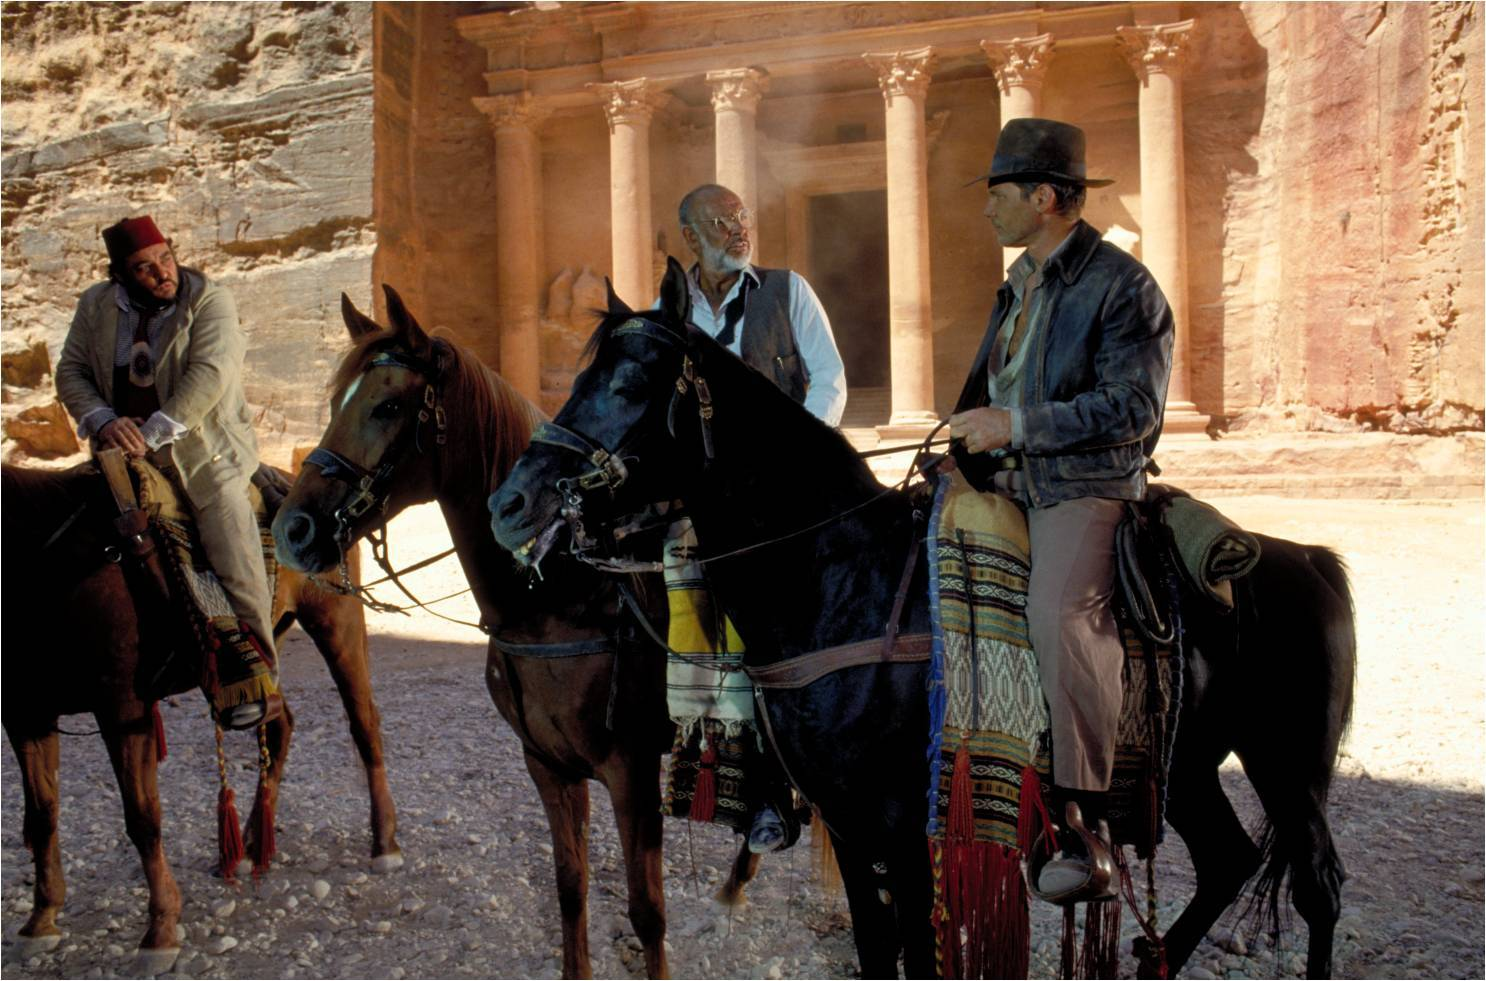 While I can't promise Rhys Davies, Sean Connery, and Harrison Ford will, or will not, be on this trip you can't risk not being able to hang with these dudes on a horse in front of the treasury at Petra, Jordan. Just sayin'